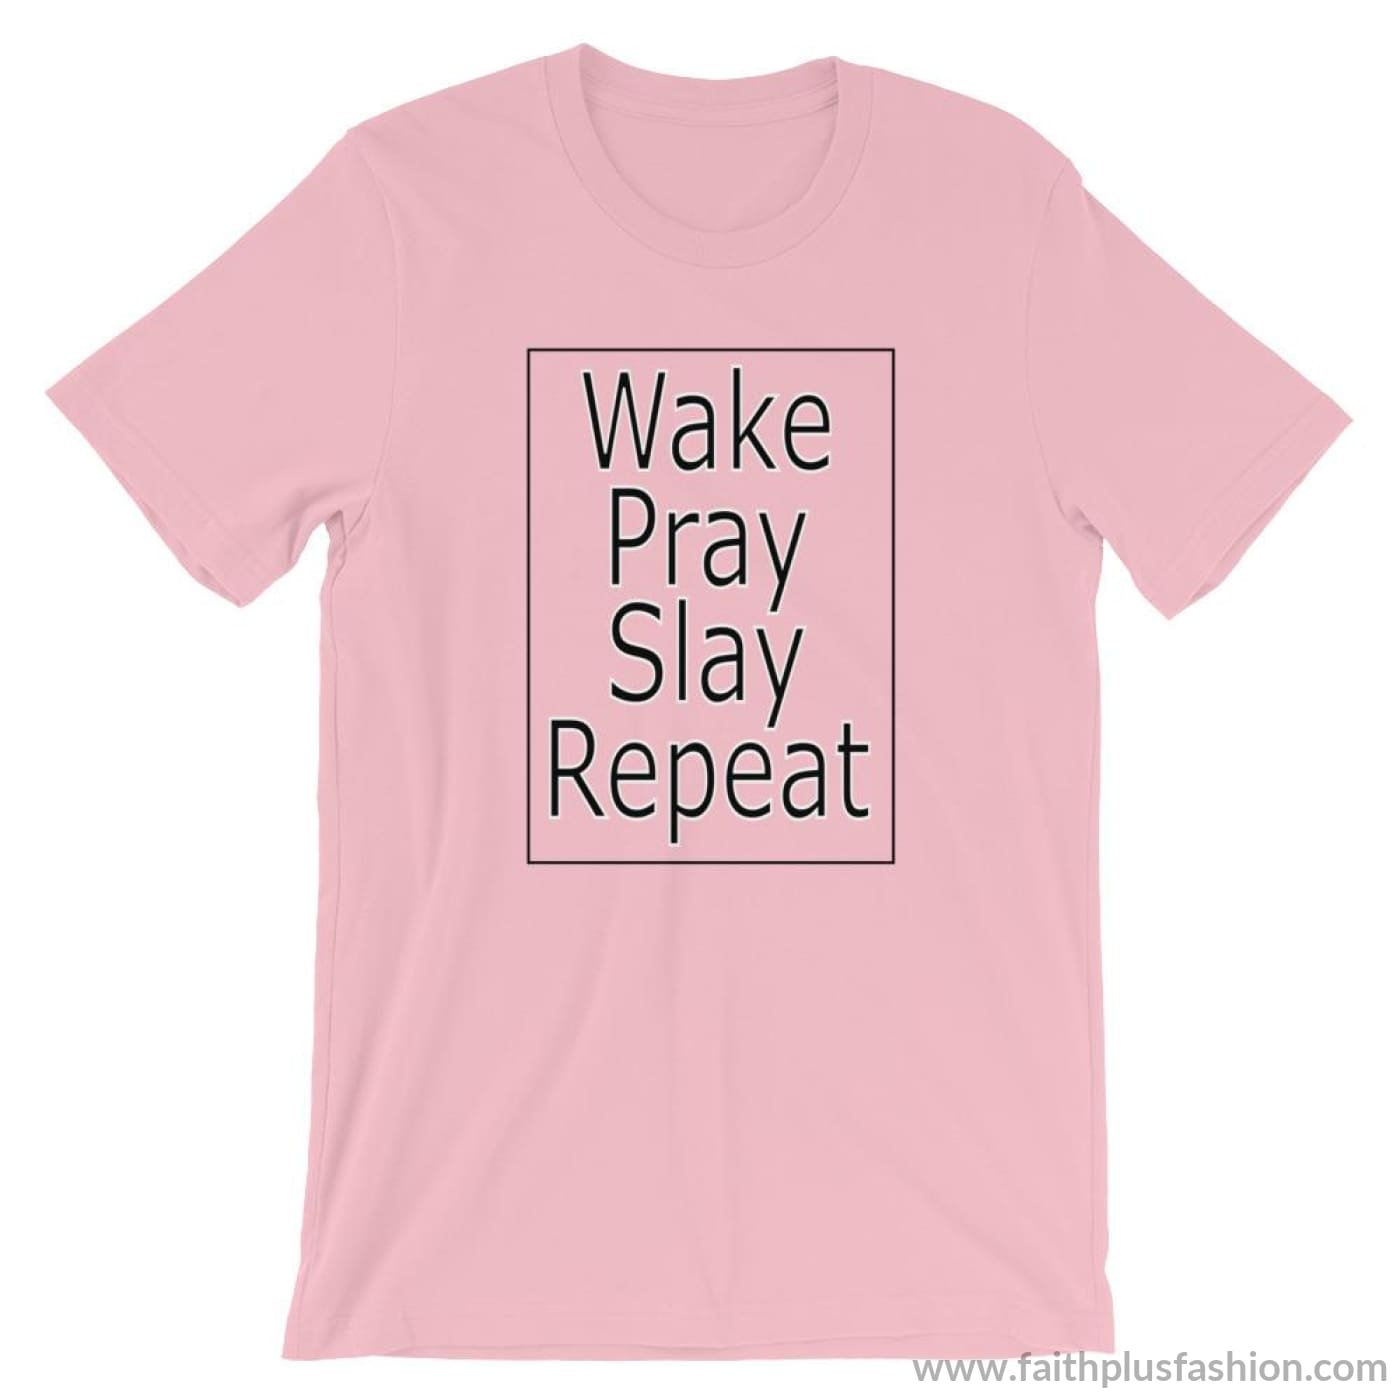 Wake Pray Slay Repeat Unisex T-Shirt - Pink / S